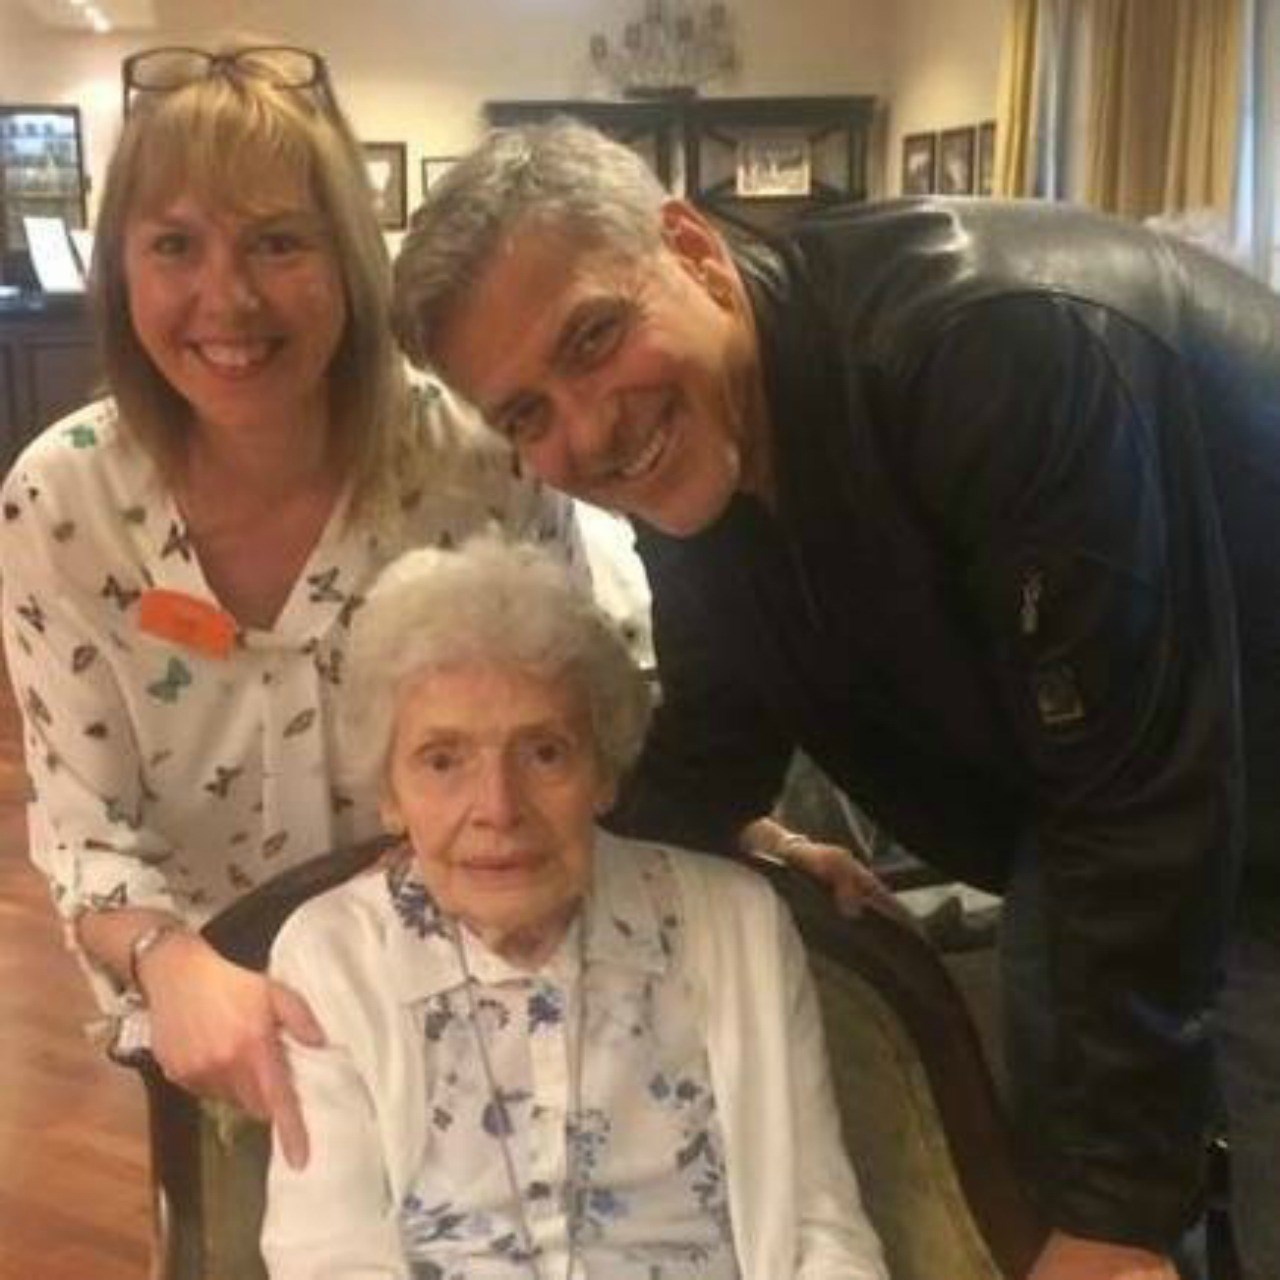 George Clooney surprises nursing home resident (and staff) on her birthday